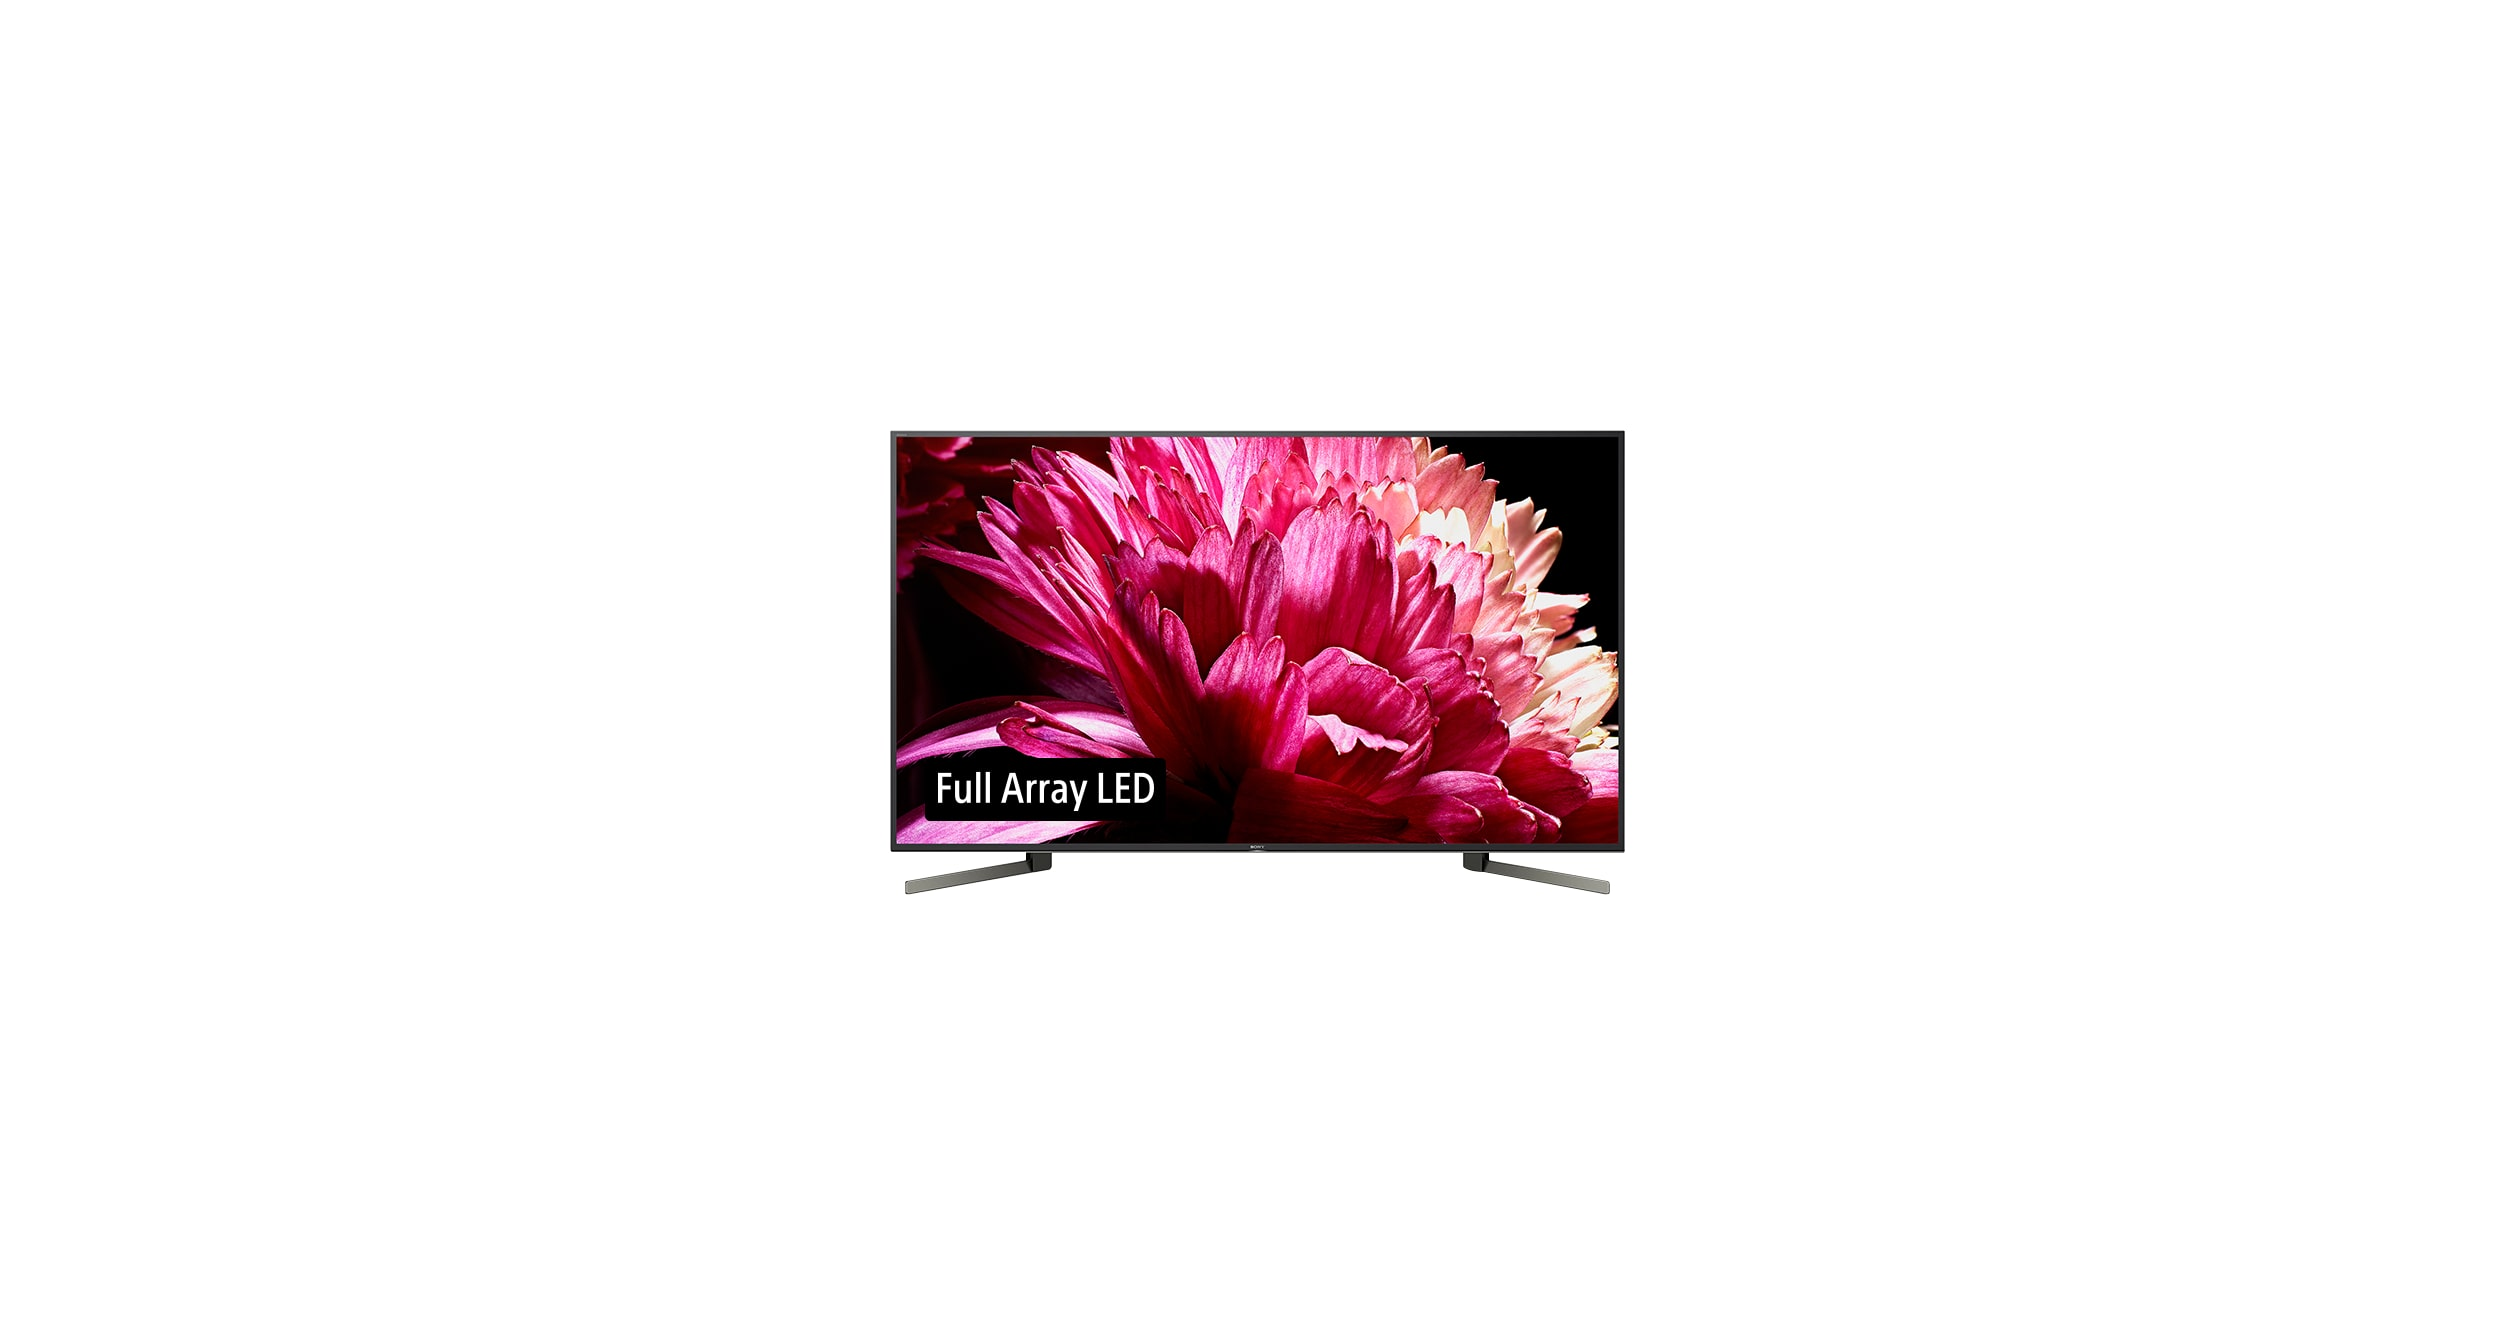 X950G Series | LED 4K HDR Smart TV | Sony US